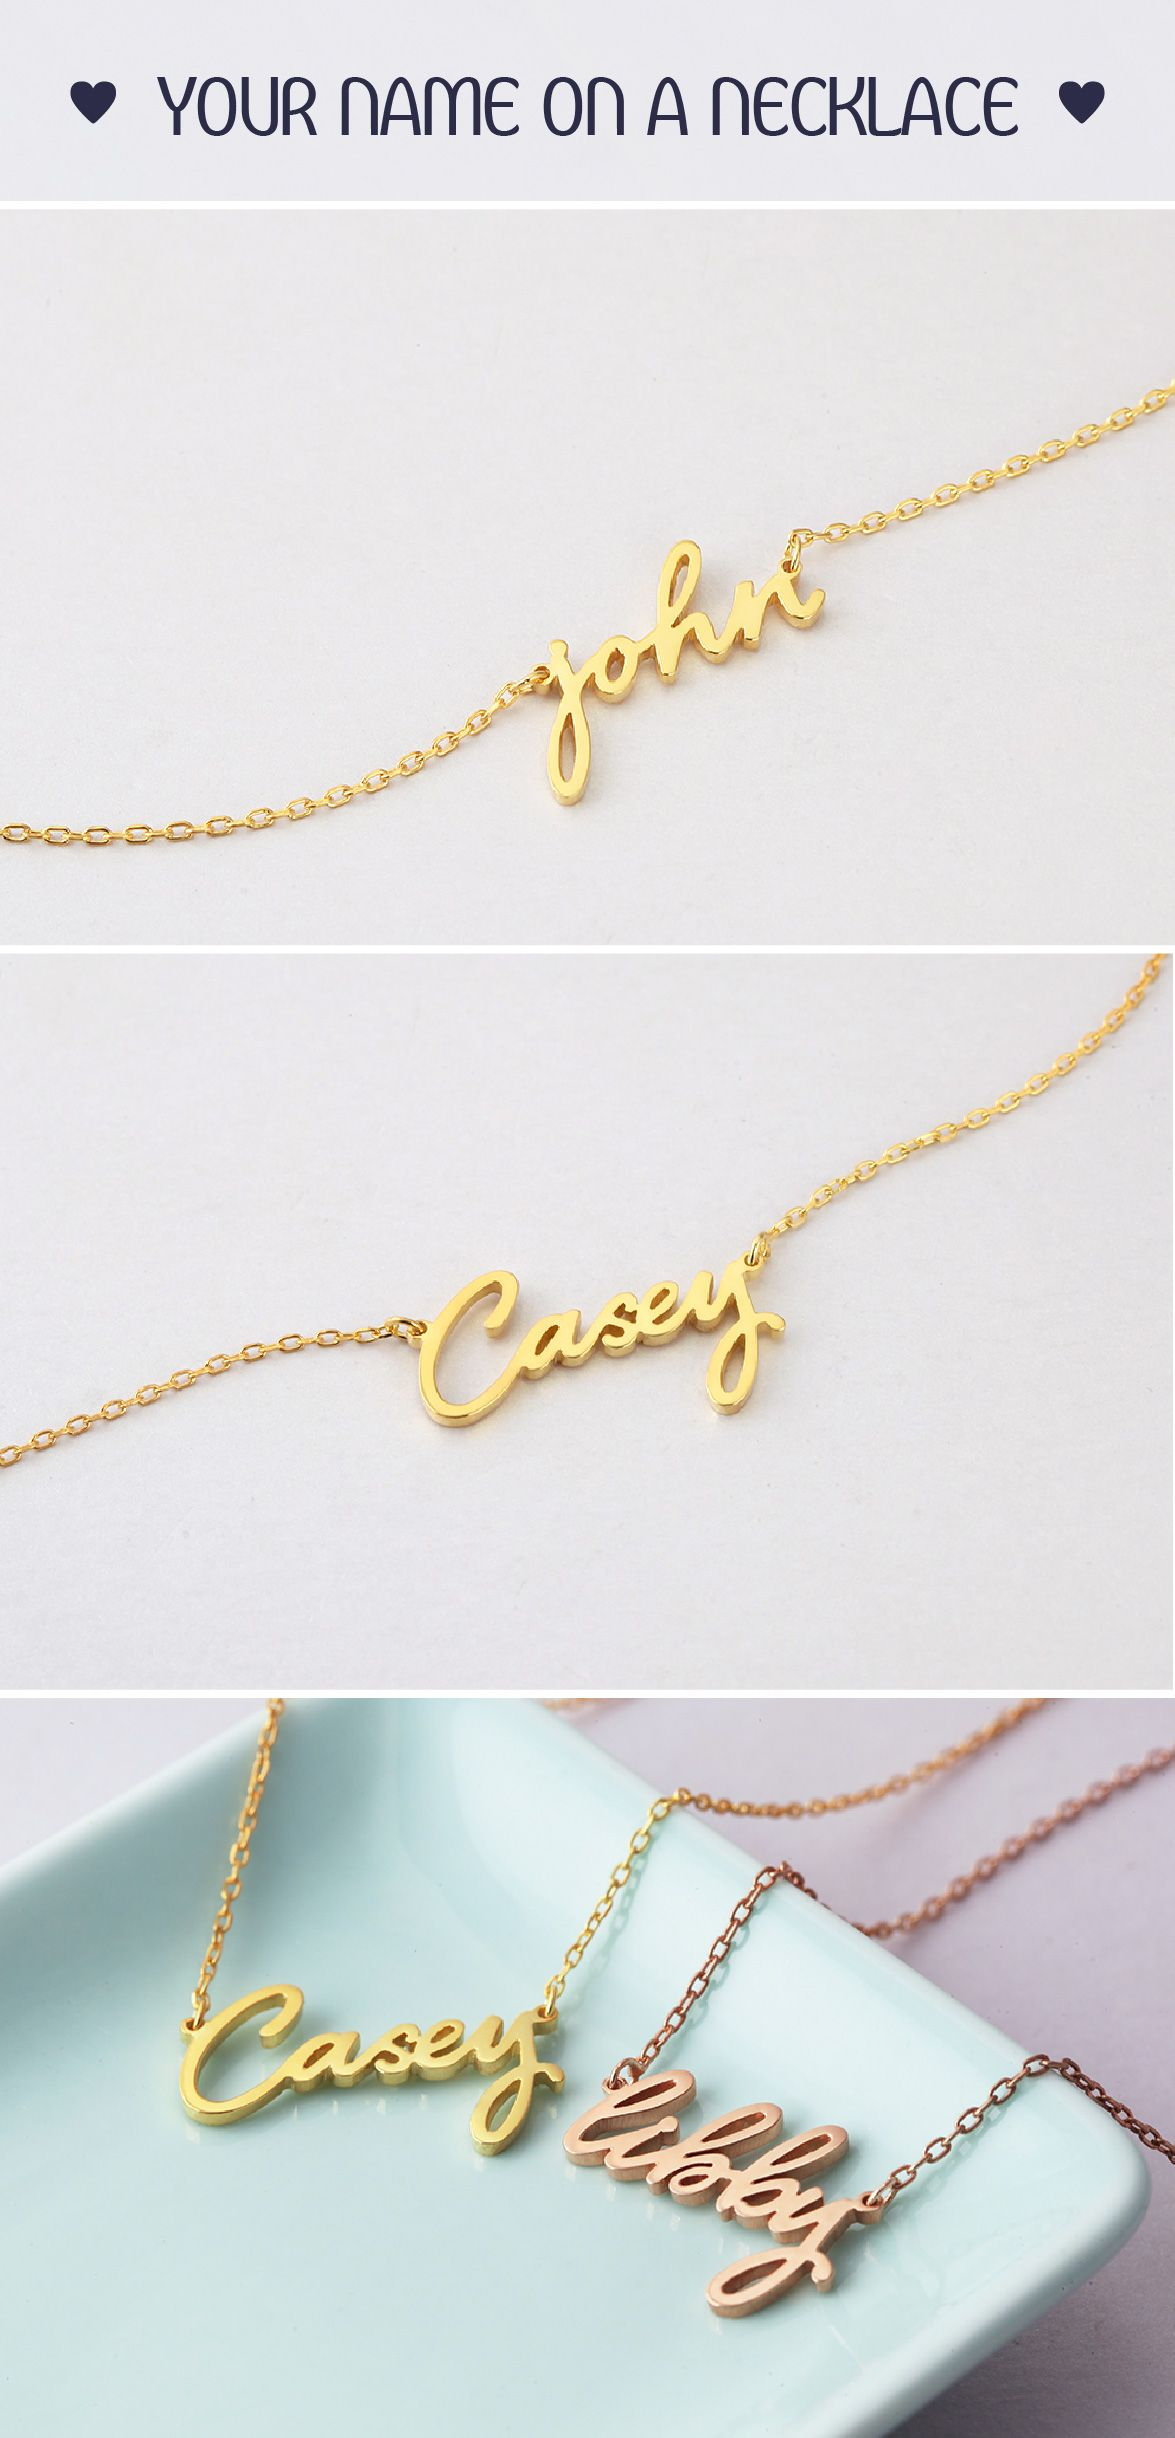 fine petite ava gold sarah script diamond necklace cursive chloe personalized name